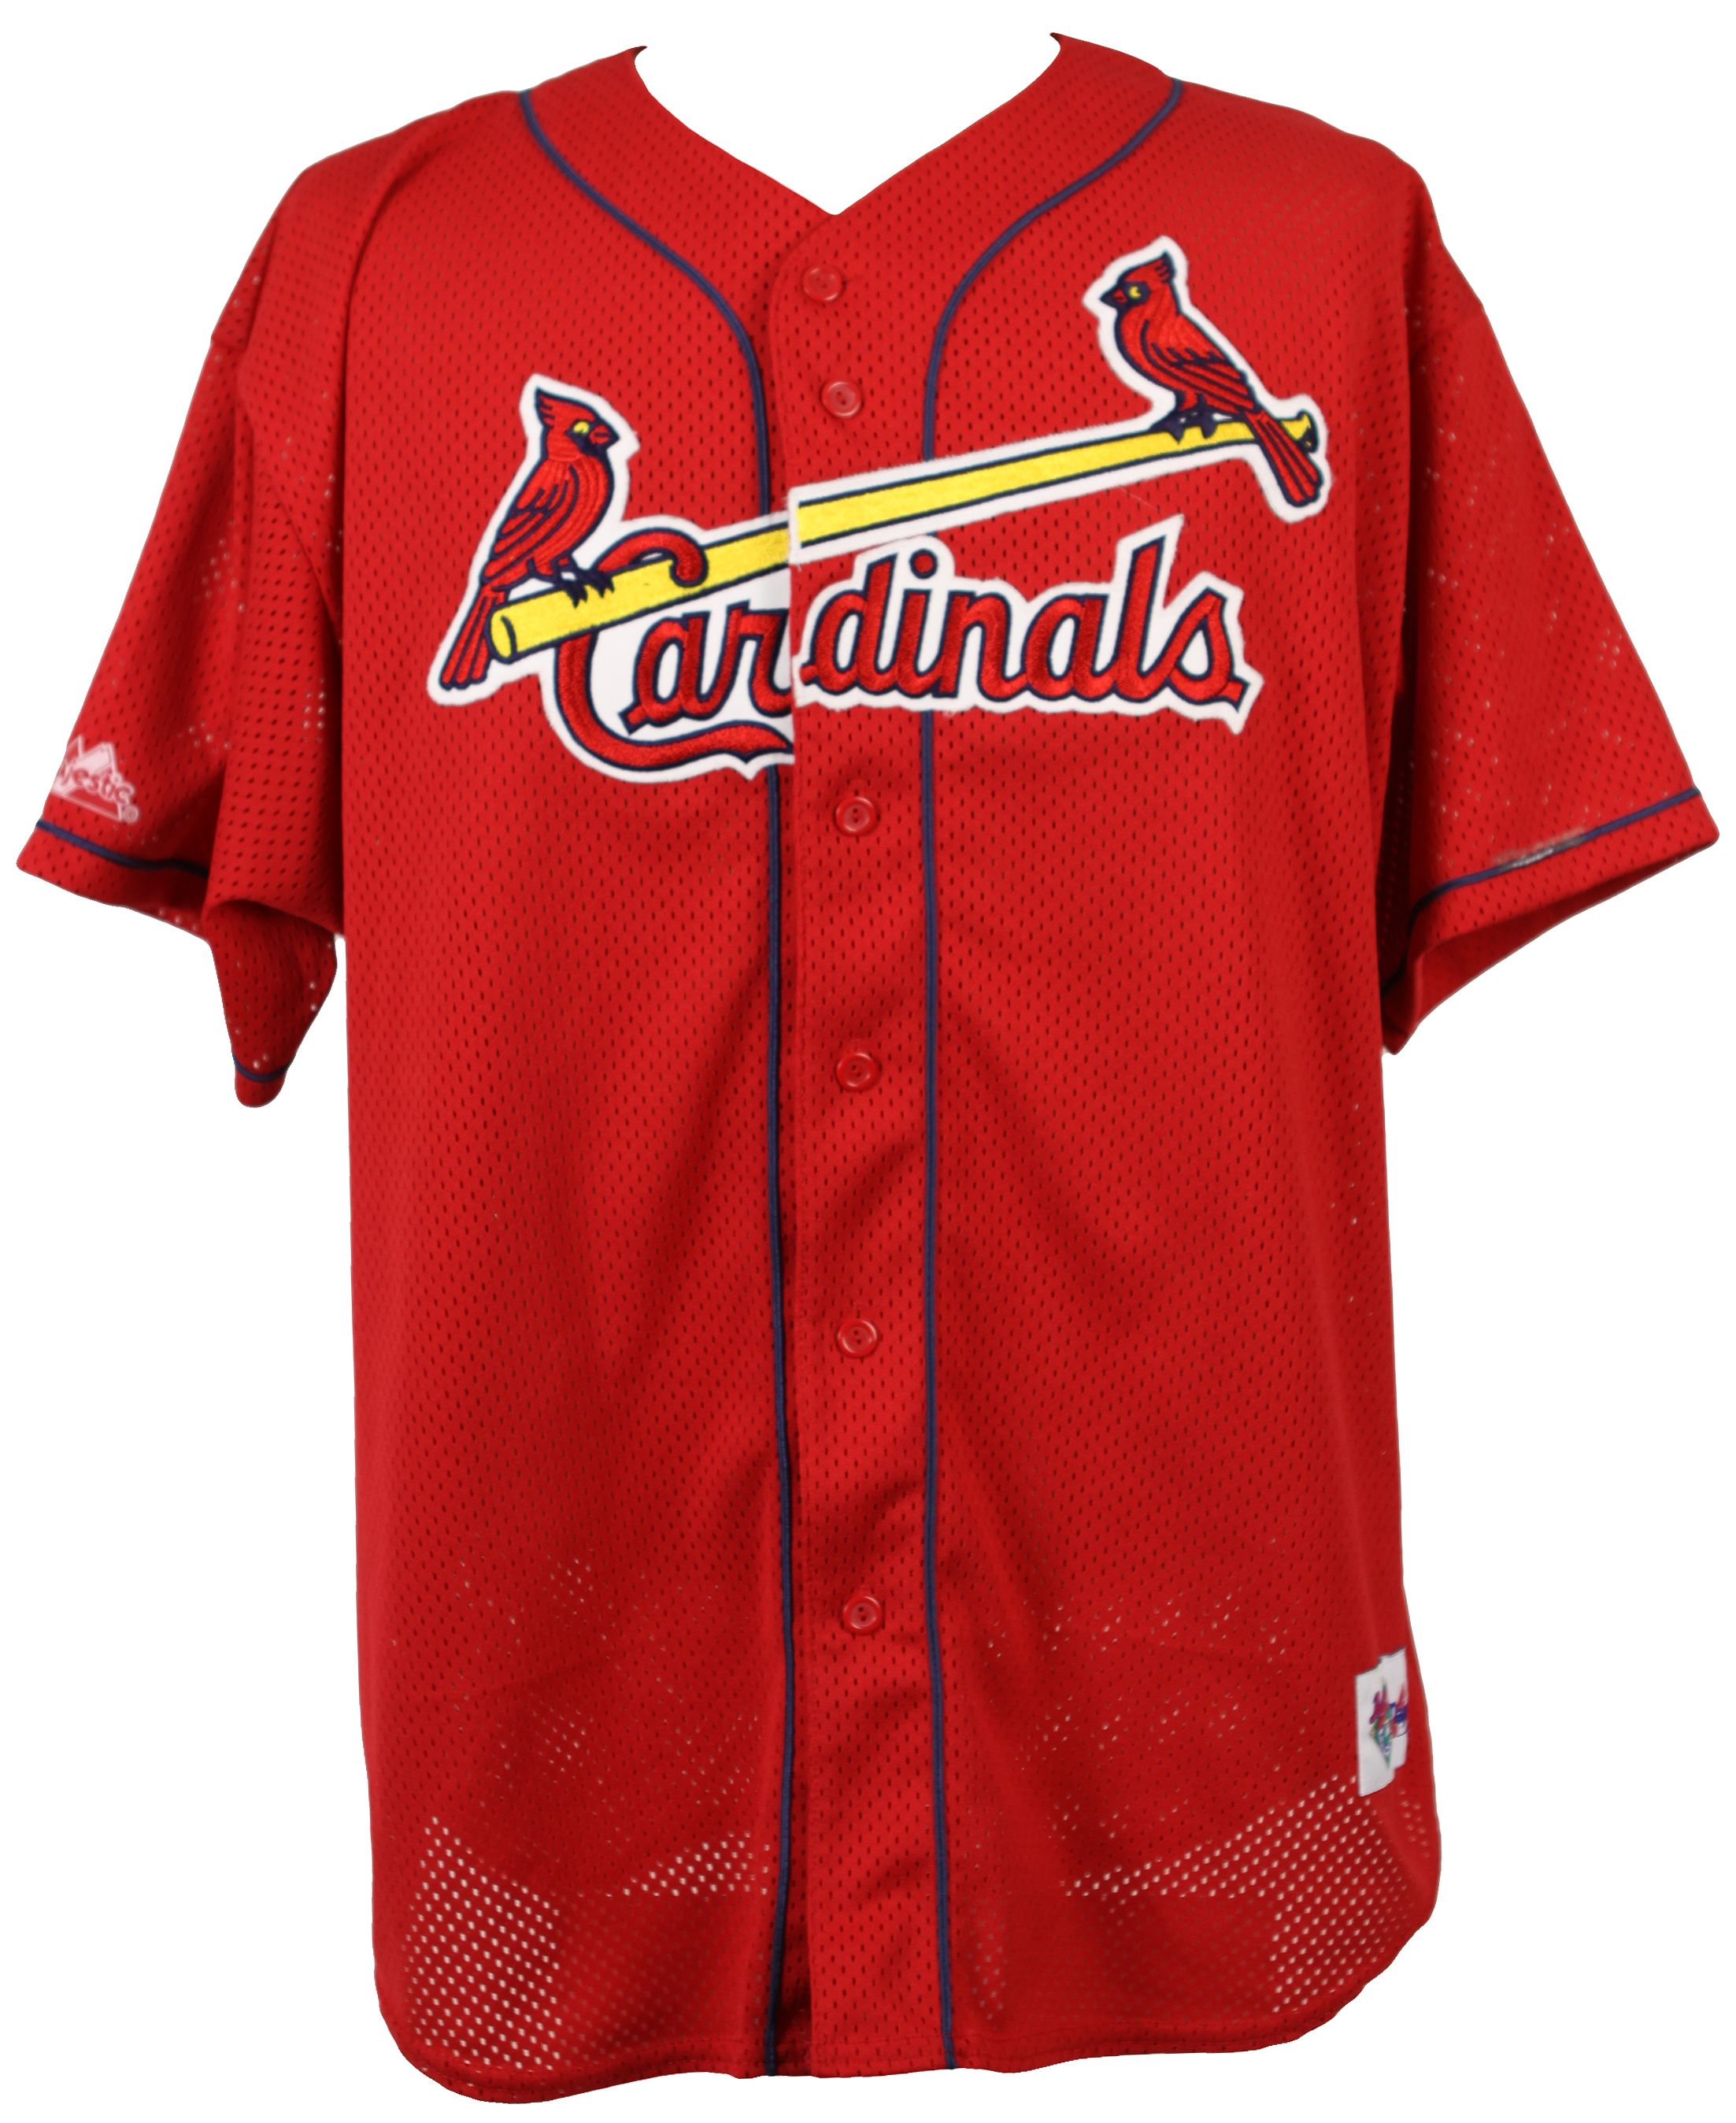 2000's Mark McGwire St. Louis Cardinals Jersey